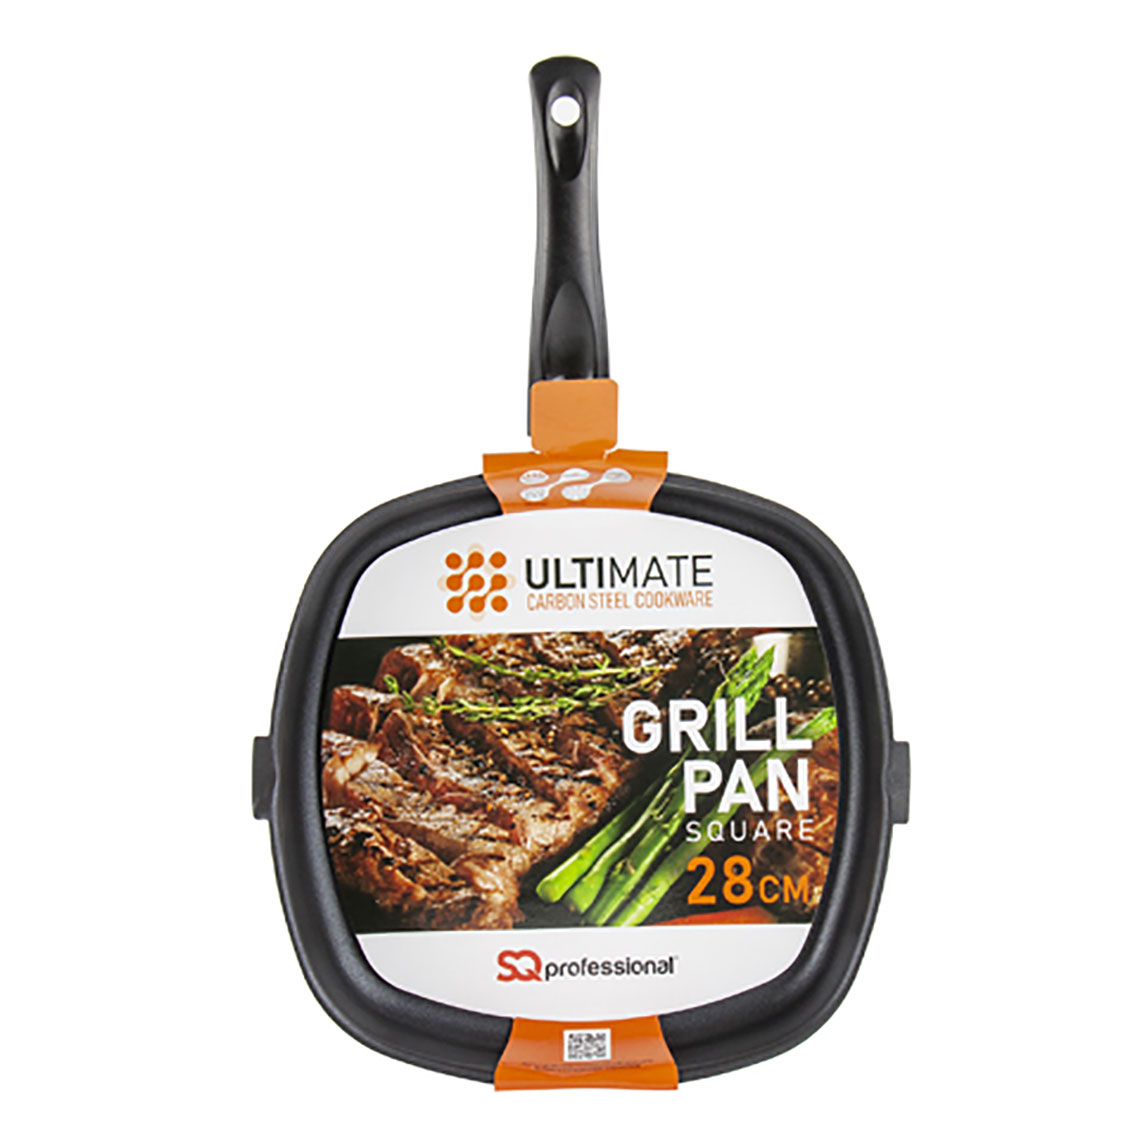 Sq Professional - Ultimate non stick - Square Grill Pan